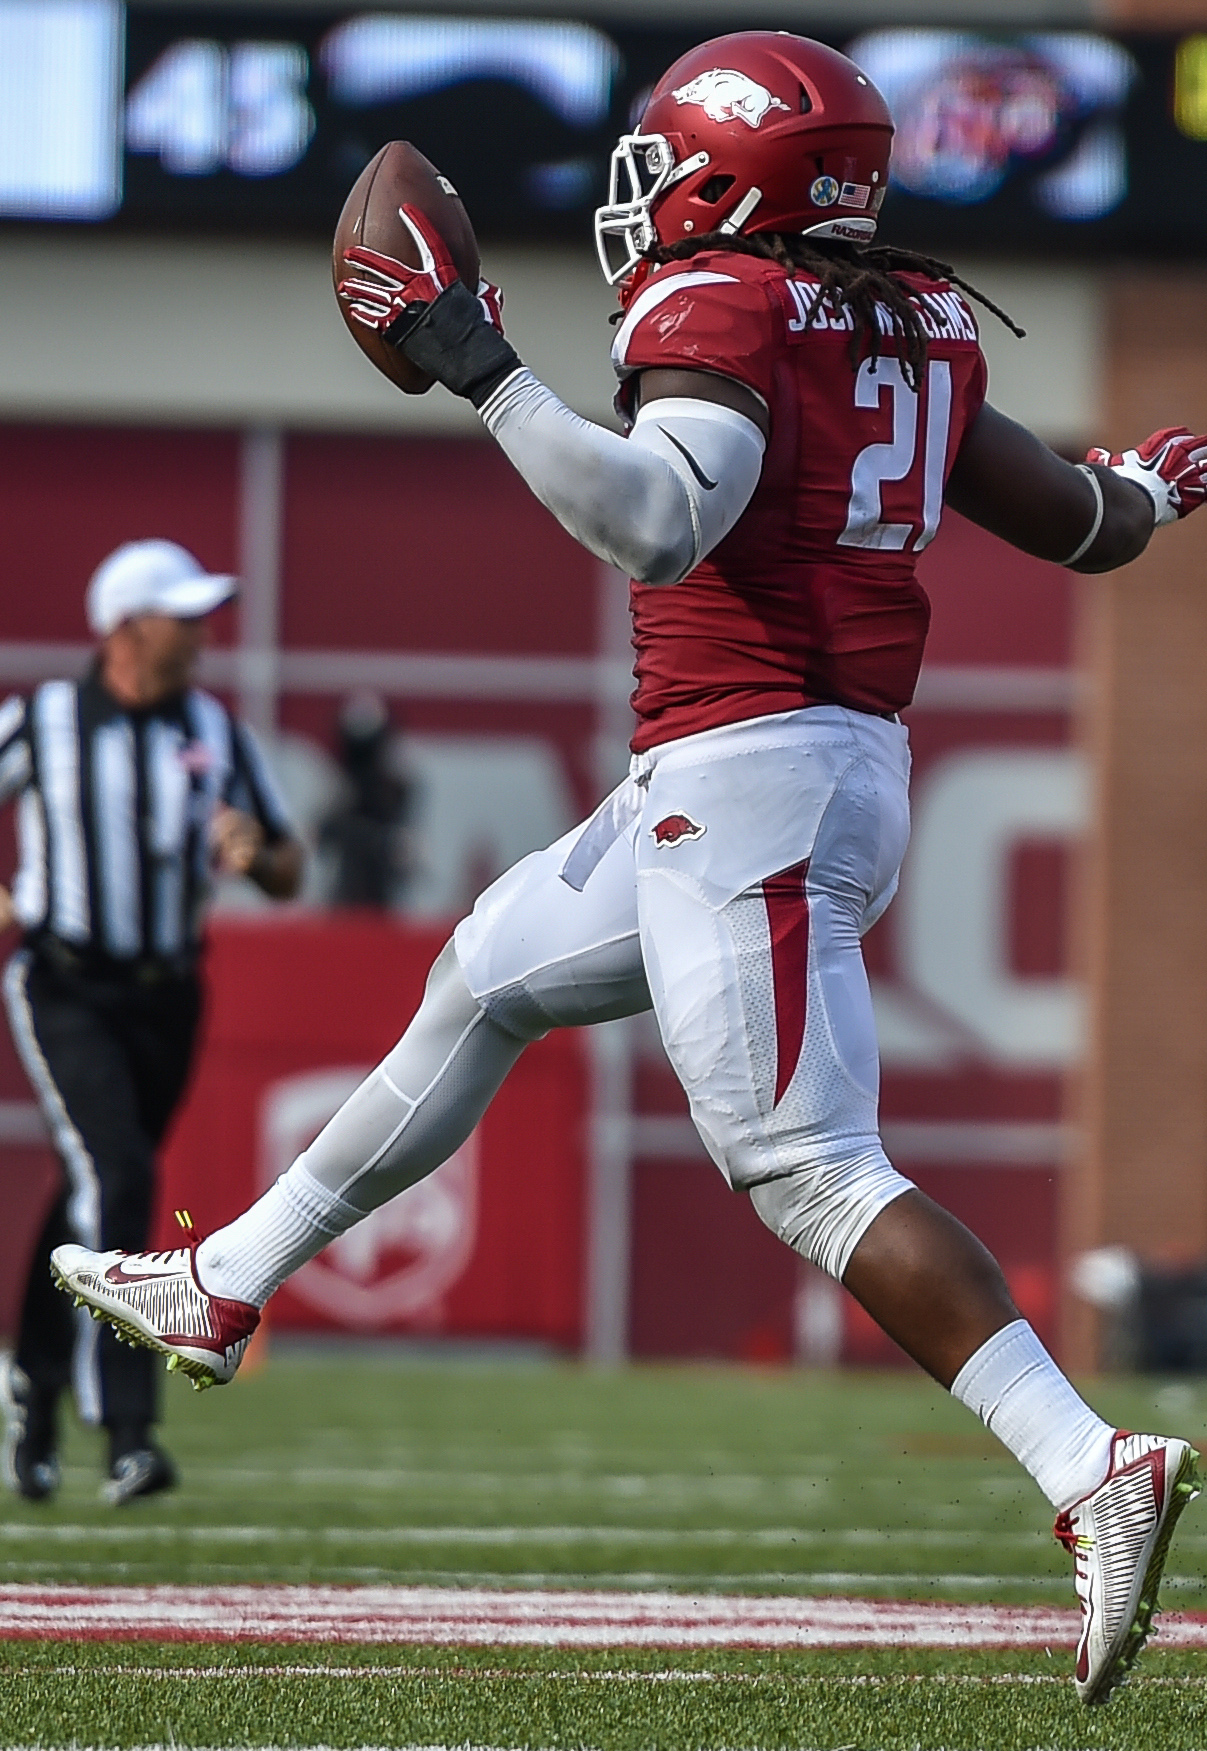 Hogs: LB Josh Williams back from the brink; Beanum out for now